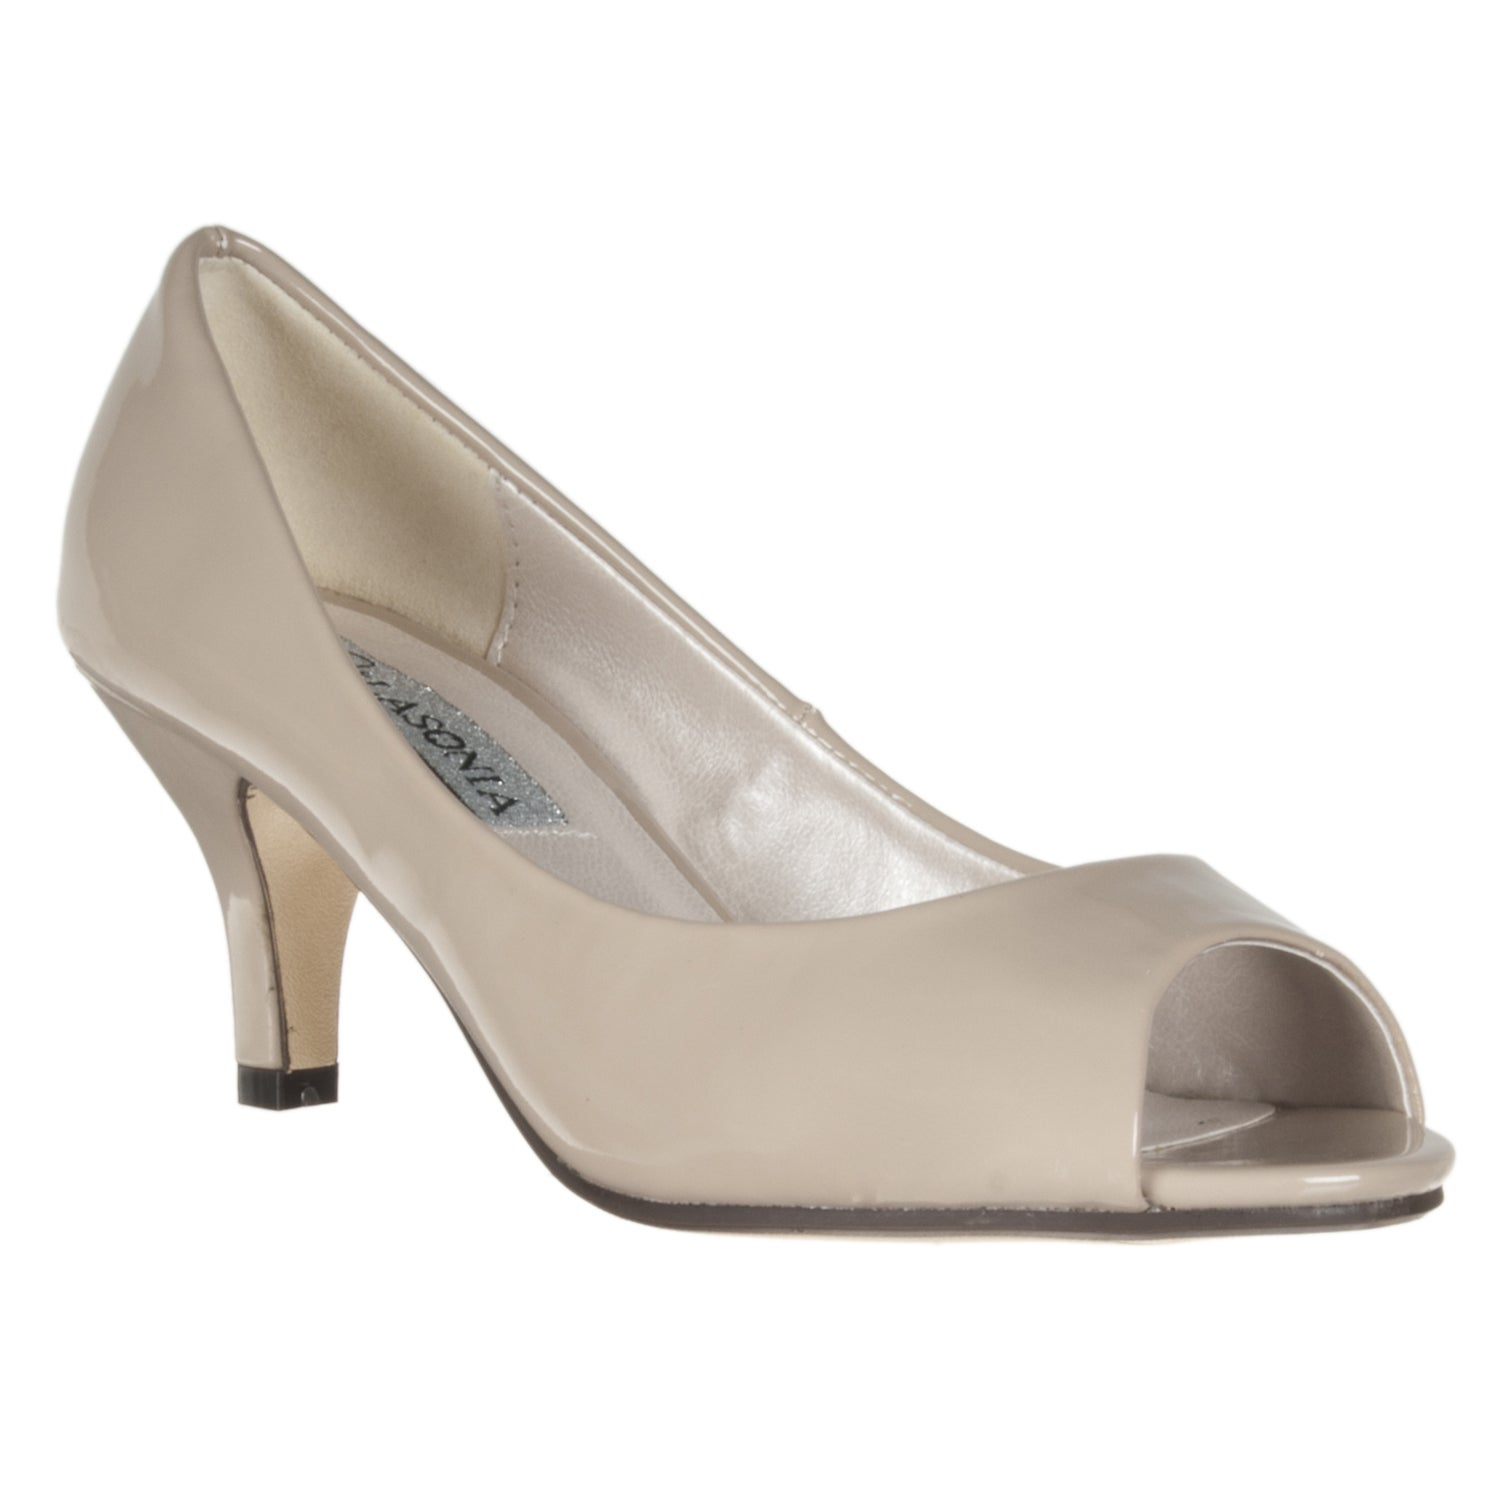 Riverberry Women's Nude Peep Toe Pumps